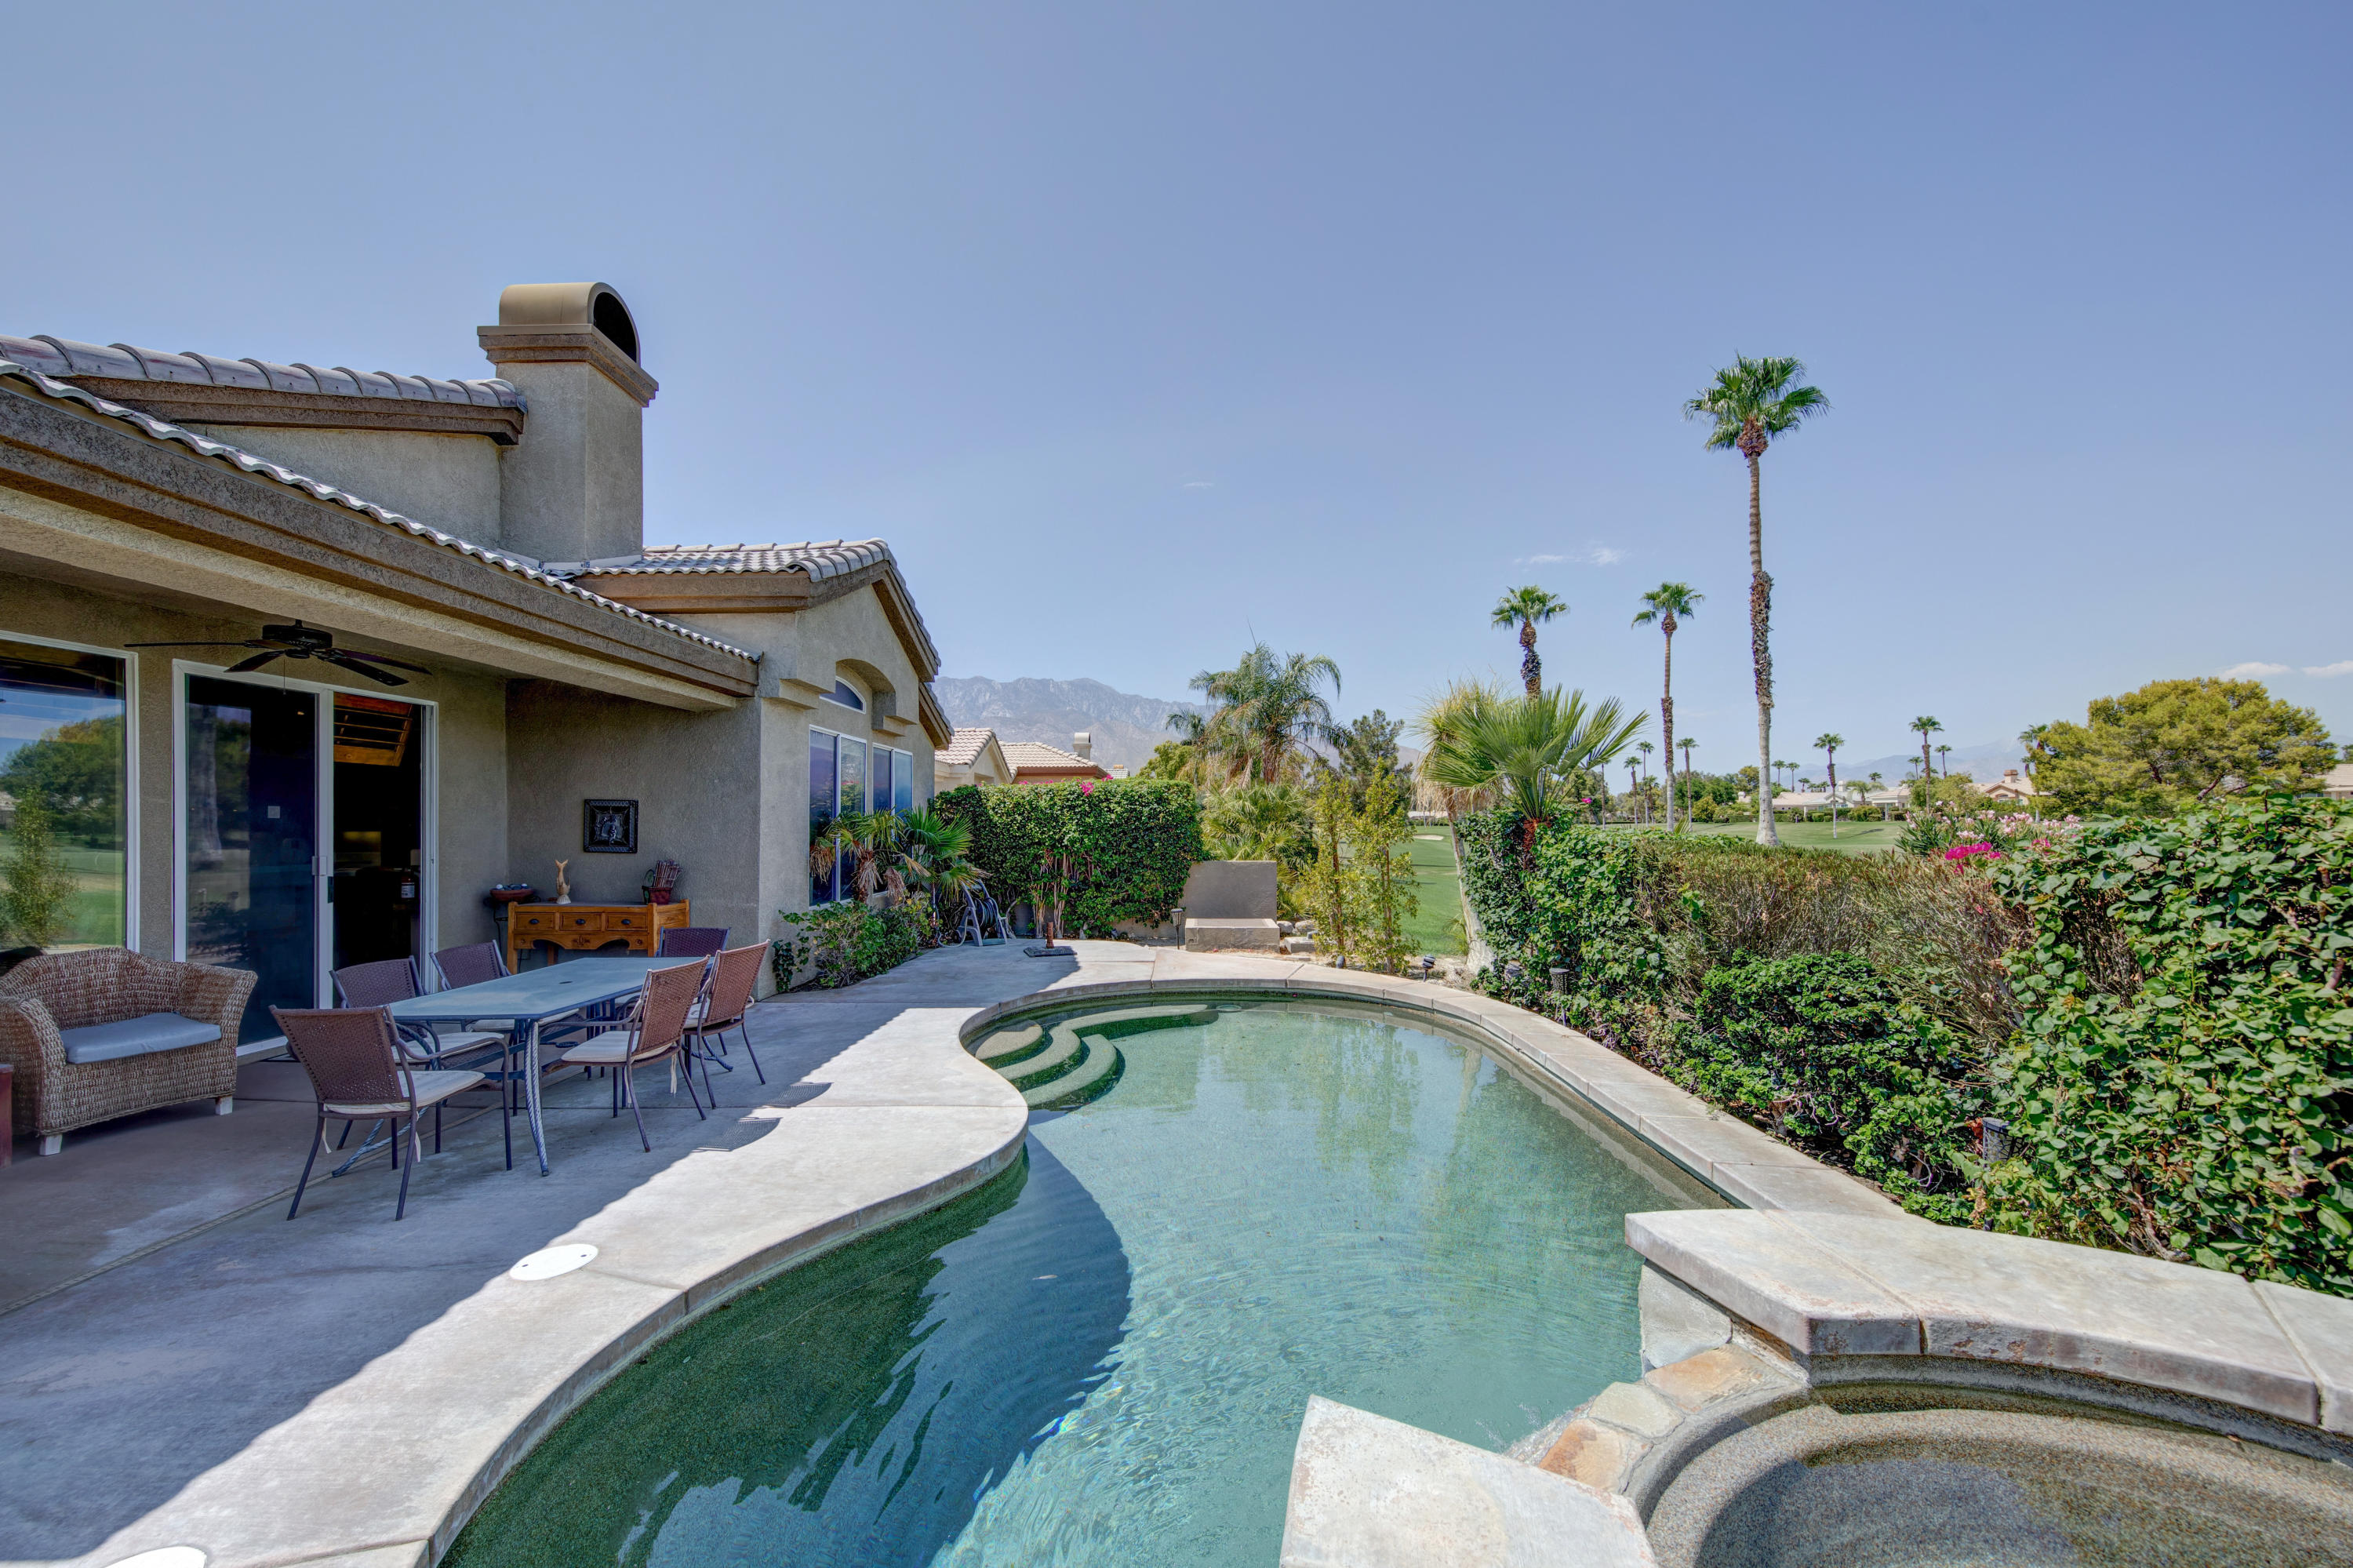 WOW!  Beautiful St. Andrews pool villa with Tommy Bahama flair!  Expansive views of Cielo 5 green and  San Gorgonio mountains.   Freshly painted kitchen cabinets.  This 2 bedroom with office/3rd bedroom is ideal for a work-at-home family.  Vacation in your own back yard with a fabulous pool with waterfall and spa.  New pool heater installed. Golf cart included! The Desert Princess has an affordable 27-hole PGA Championship golf course, no Tee-time lotteries, no initiation fees, rated among the best in the valley by GOLF DIGEST. This quiet community is away from the noise yet minutes from everything that is in Palm Springs; restaurants, shopping, casinos, an international airport, the Tramway, Art Museum, Theaters, and the Street Fair. Land Lease thru 2069, Monthly ground rent $119.58.